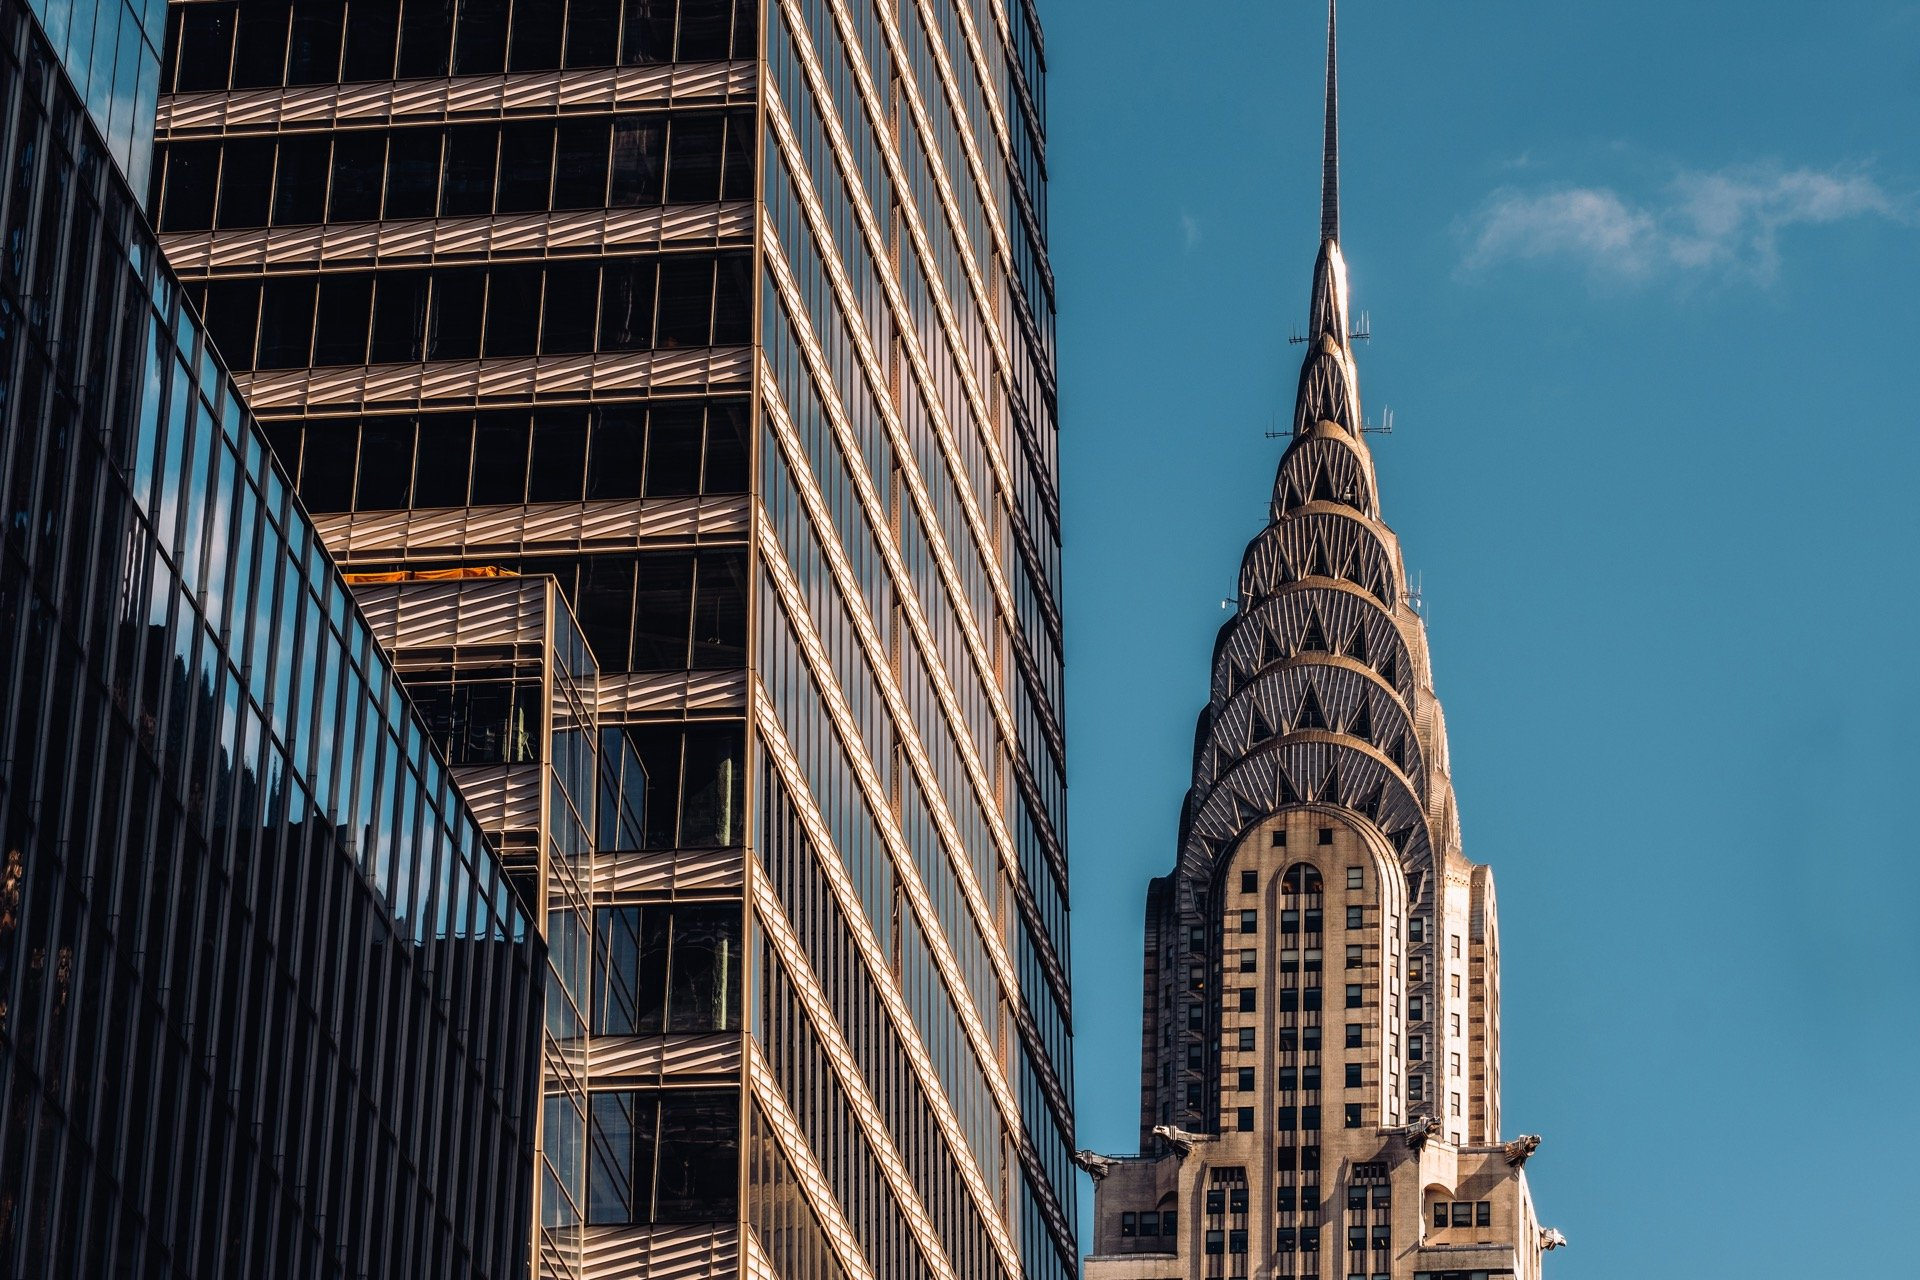 Stainless steel Chrysler building